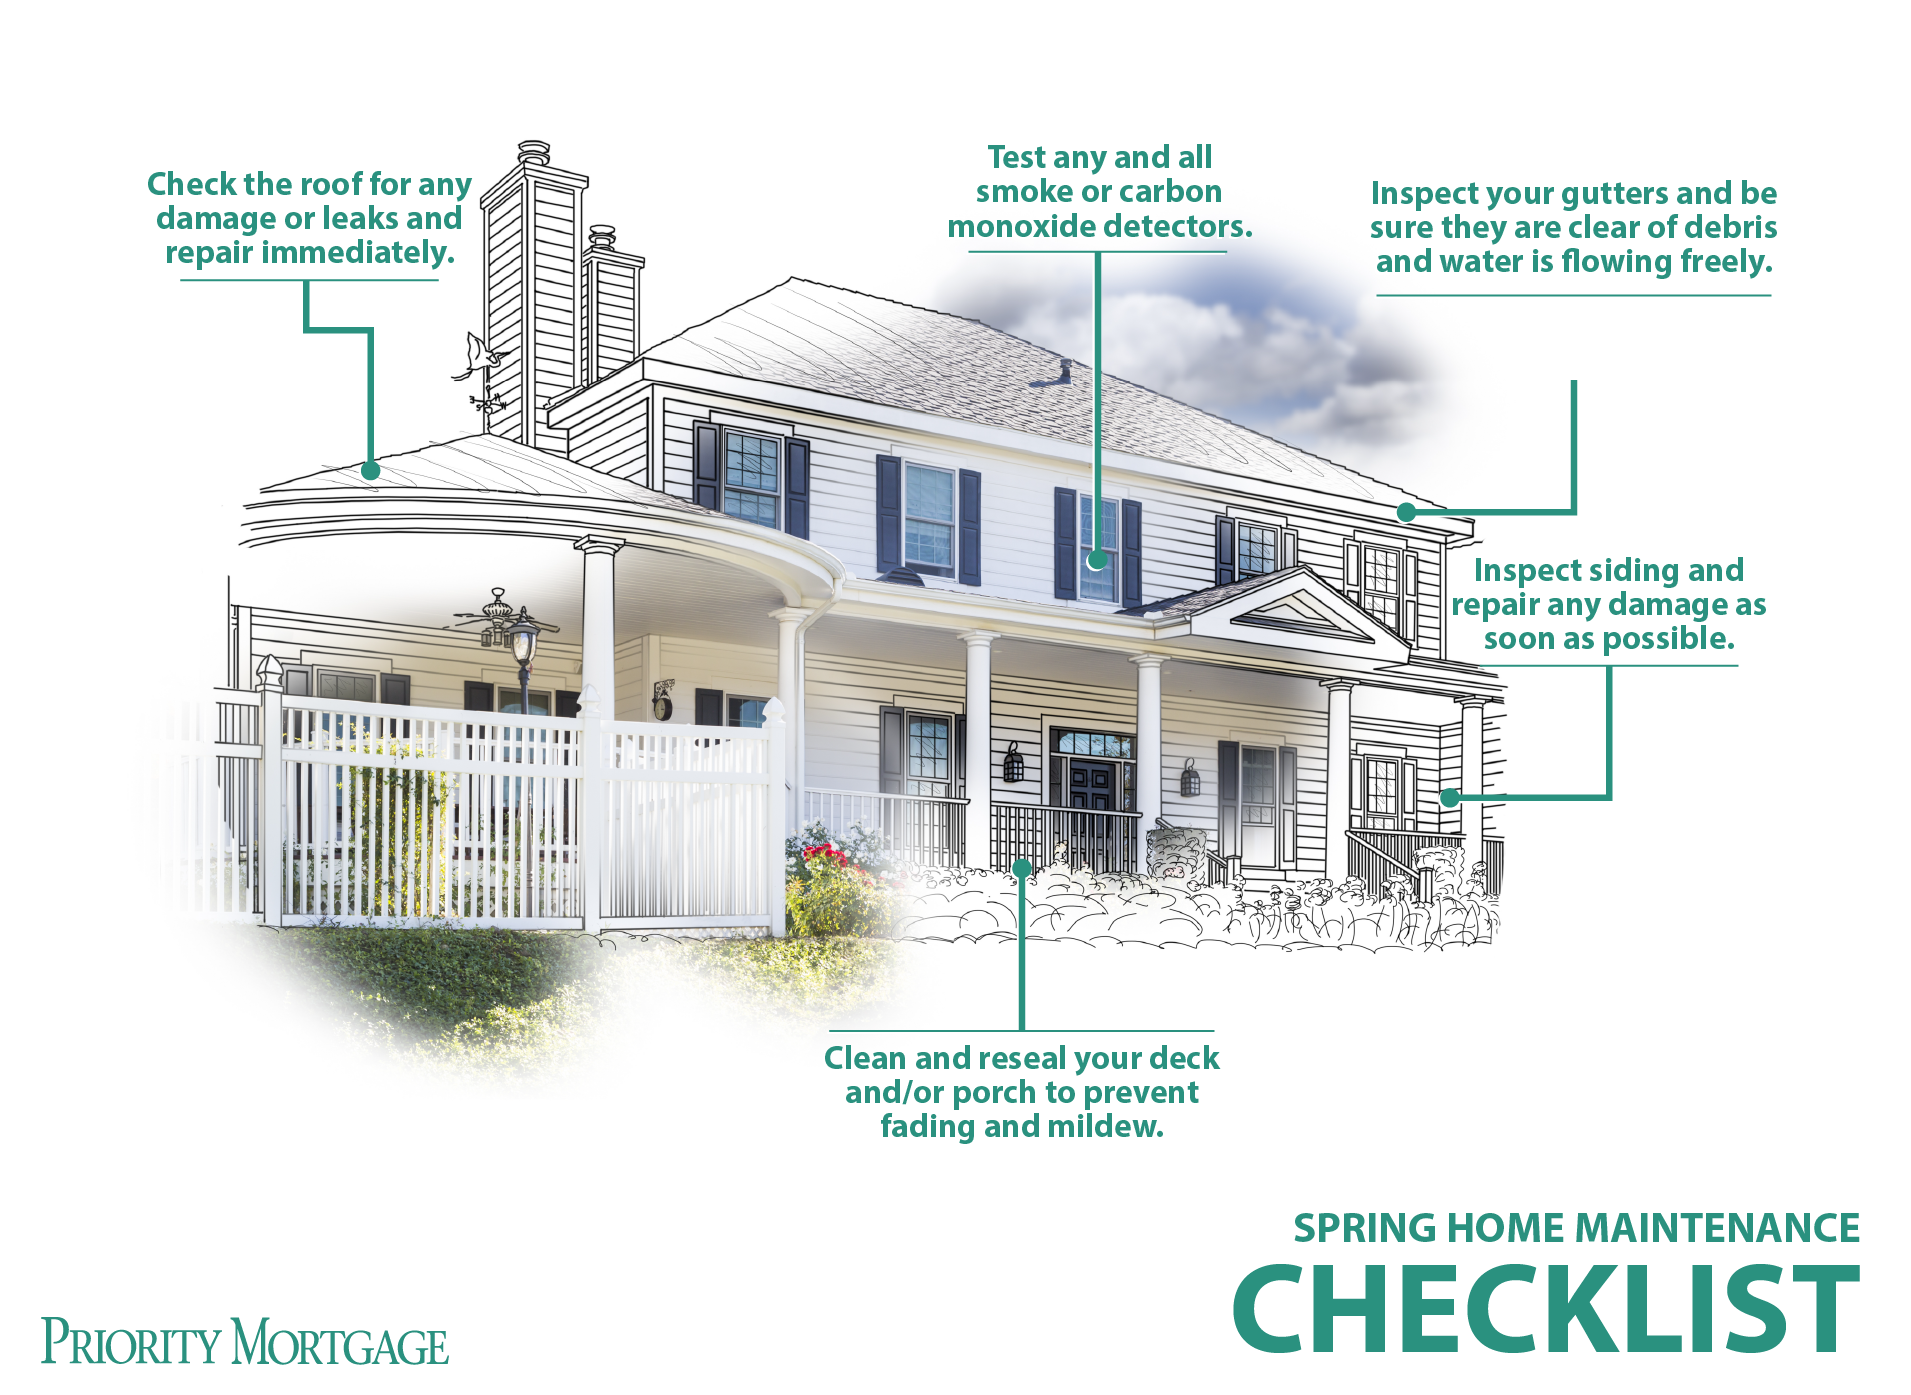 The Spring Home Maintenance Checklist Priority Mortgage Corp